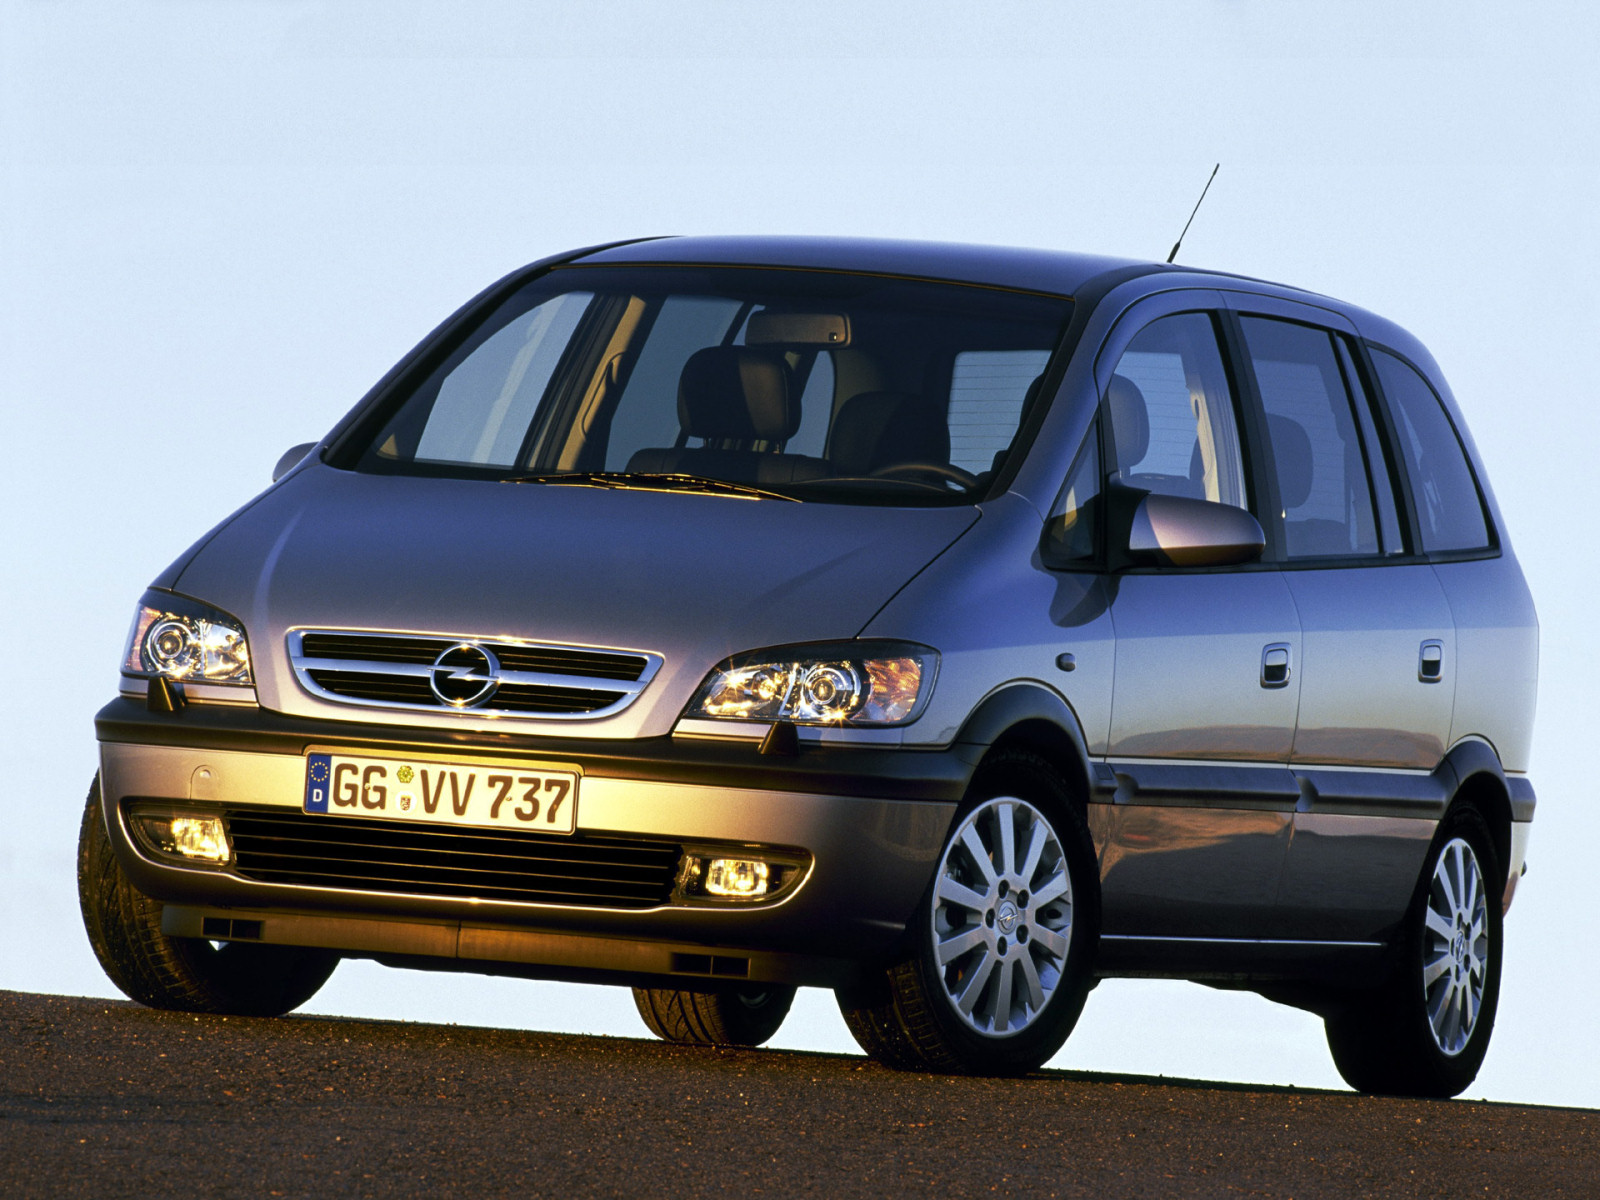 opel zafira 2003 2005 opel zafira 2003 2005 photo 01 car in pictures car photo gallery. Black Bedroom Furniture Sets. Home Design Ideas